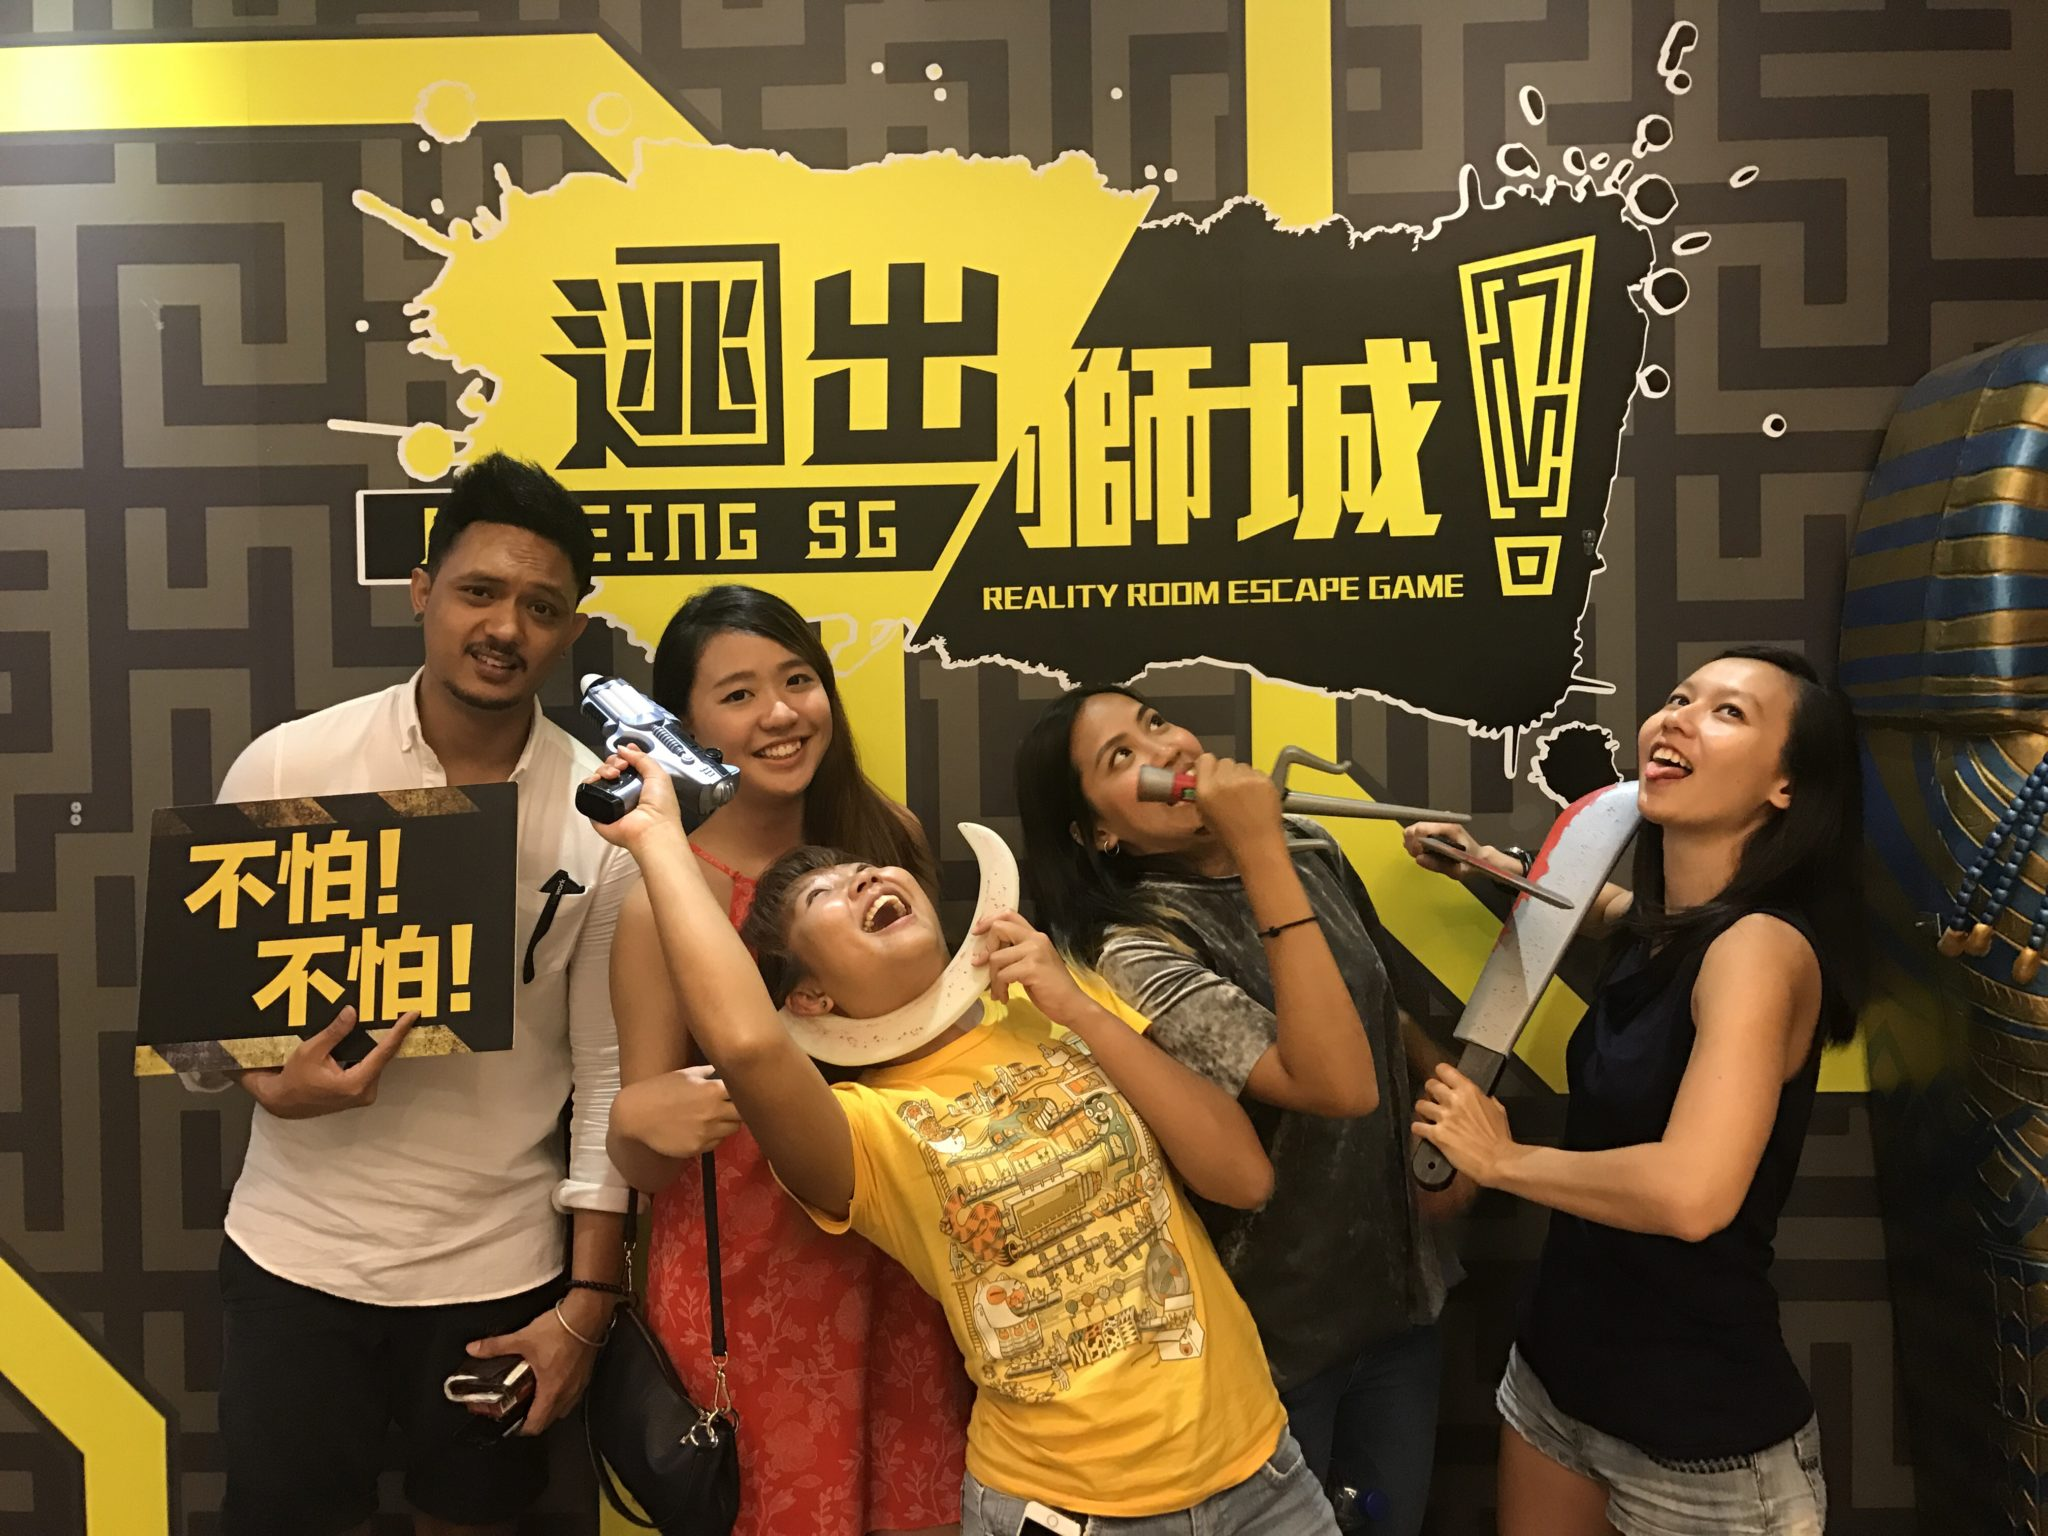 ShopBack Bonding Activity at Freeing SG Escape Room last June.